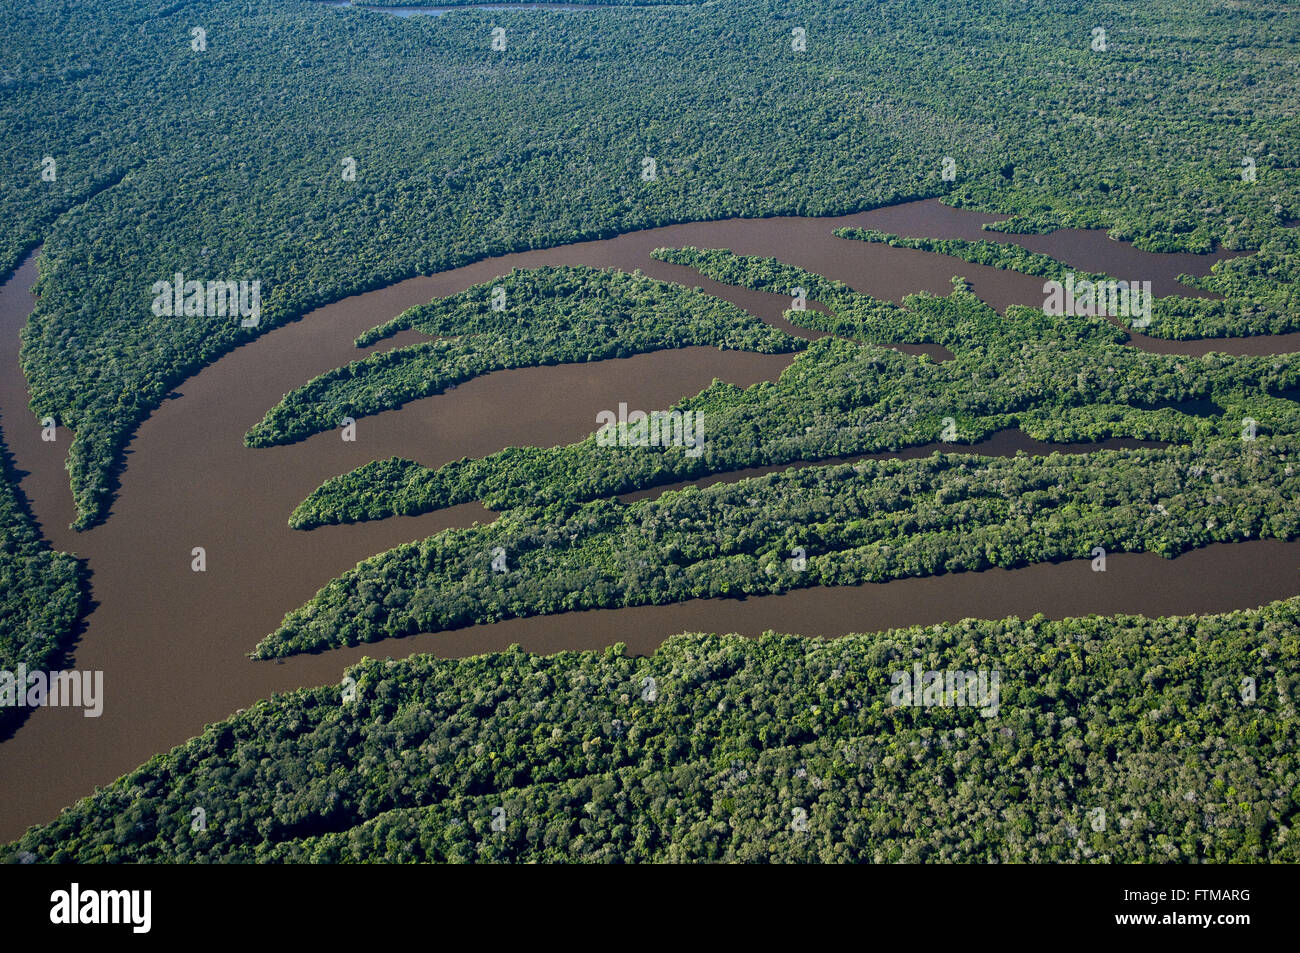 Aerial view of the lakes of the Cantao State Park - Stock Image